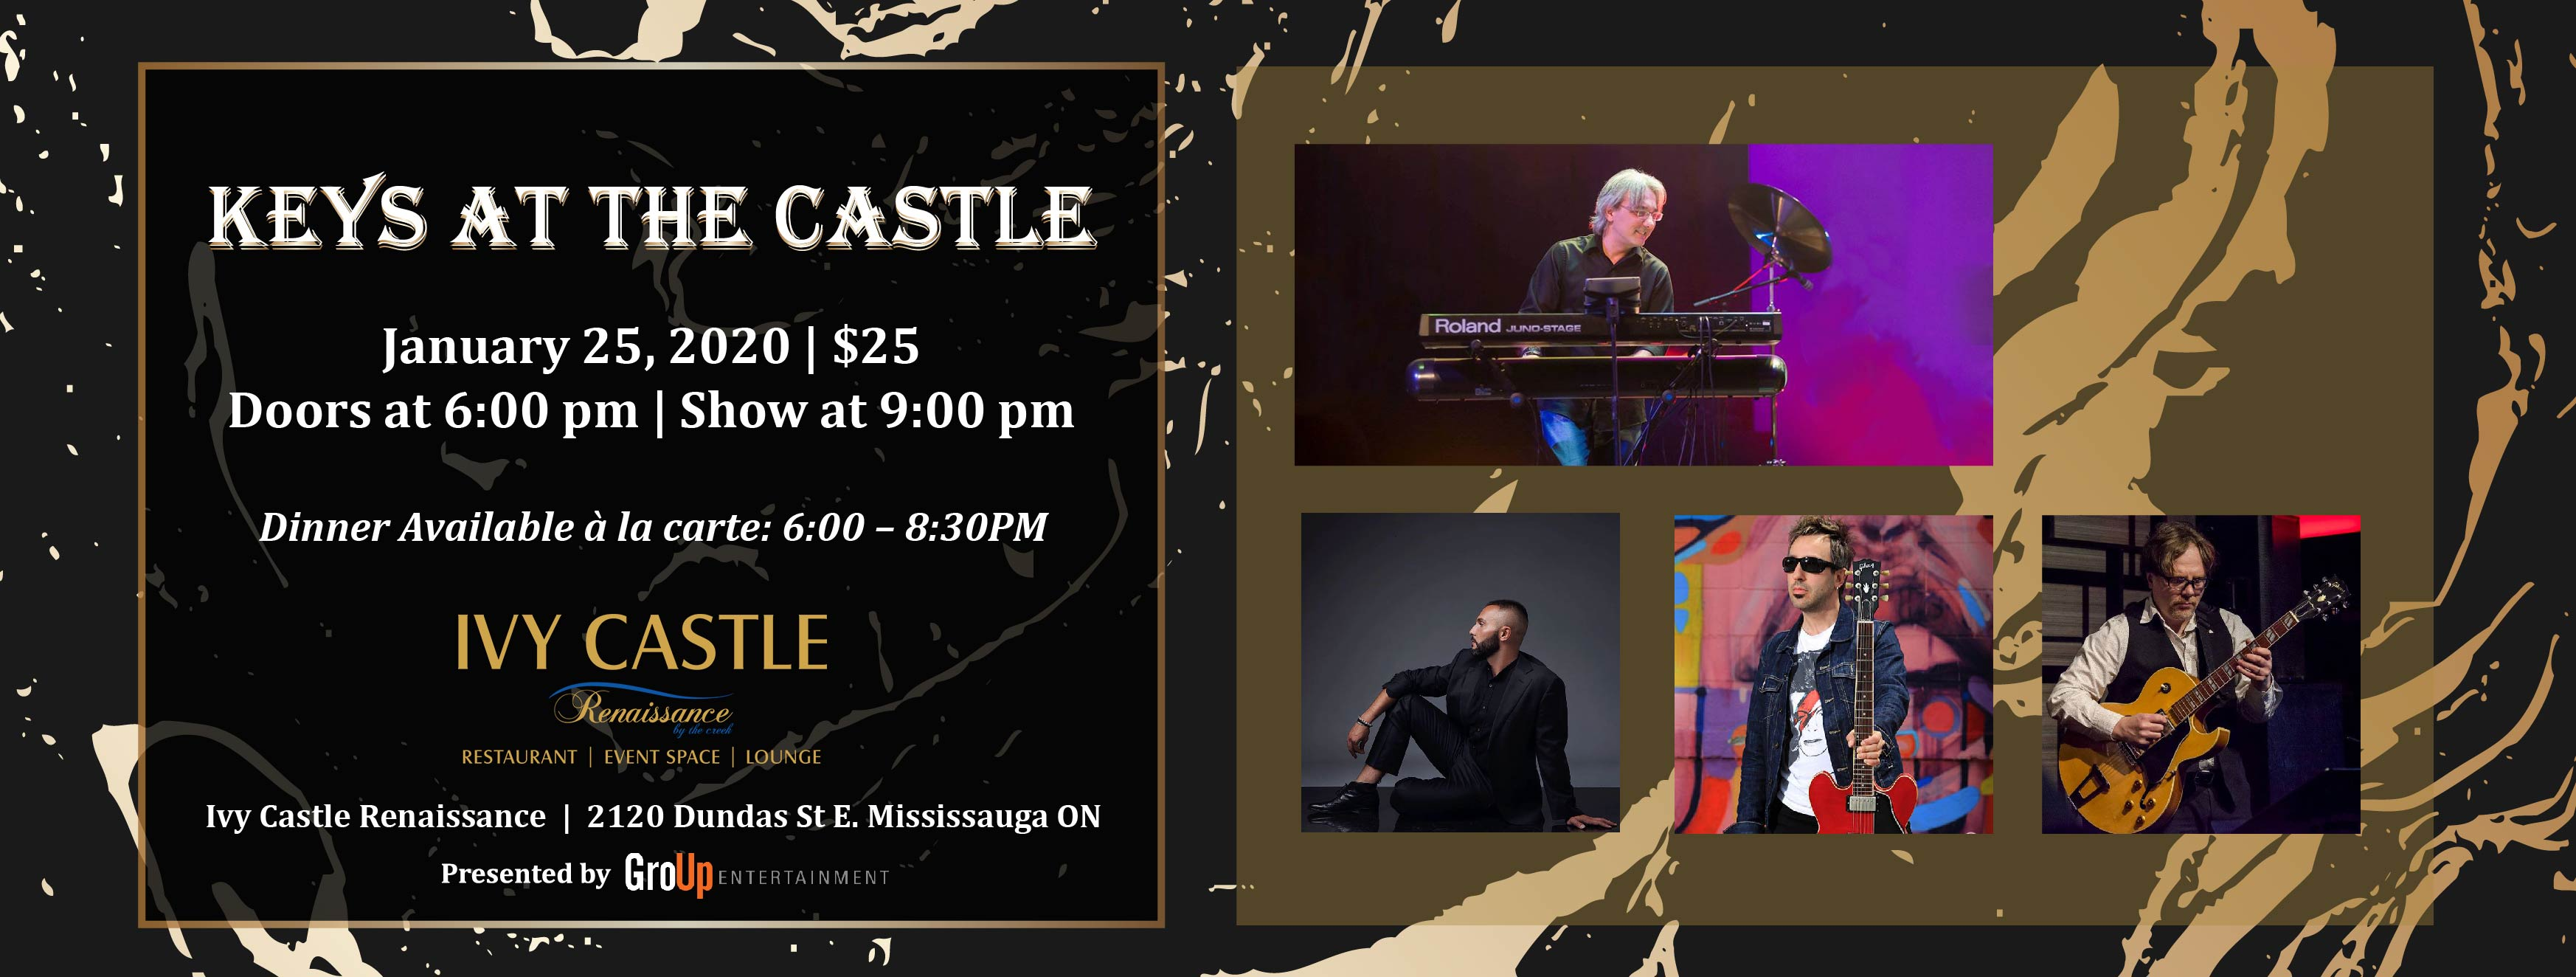 GroUp-Events-Ticketing-Keys-at-the-Castle-January-25-2020-1-04